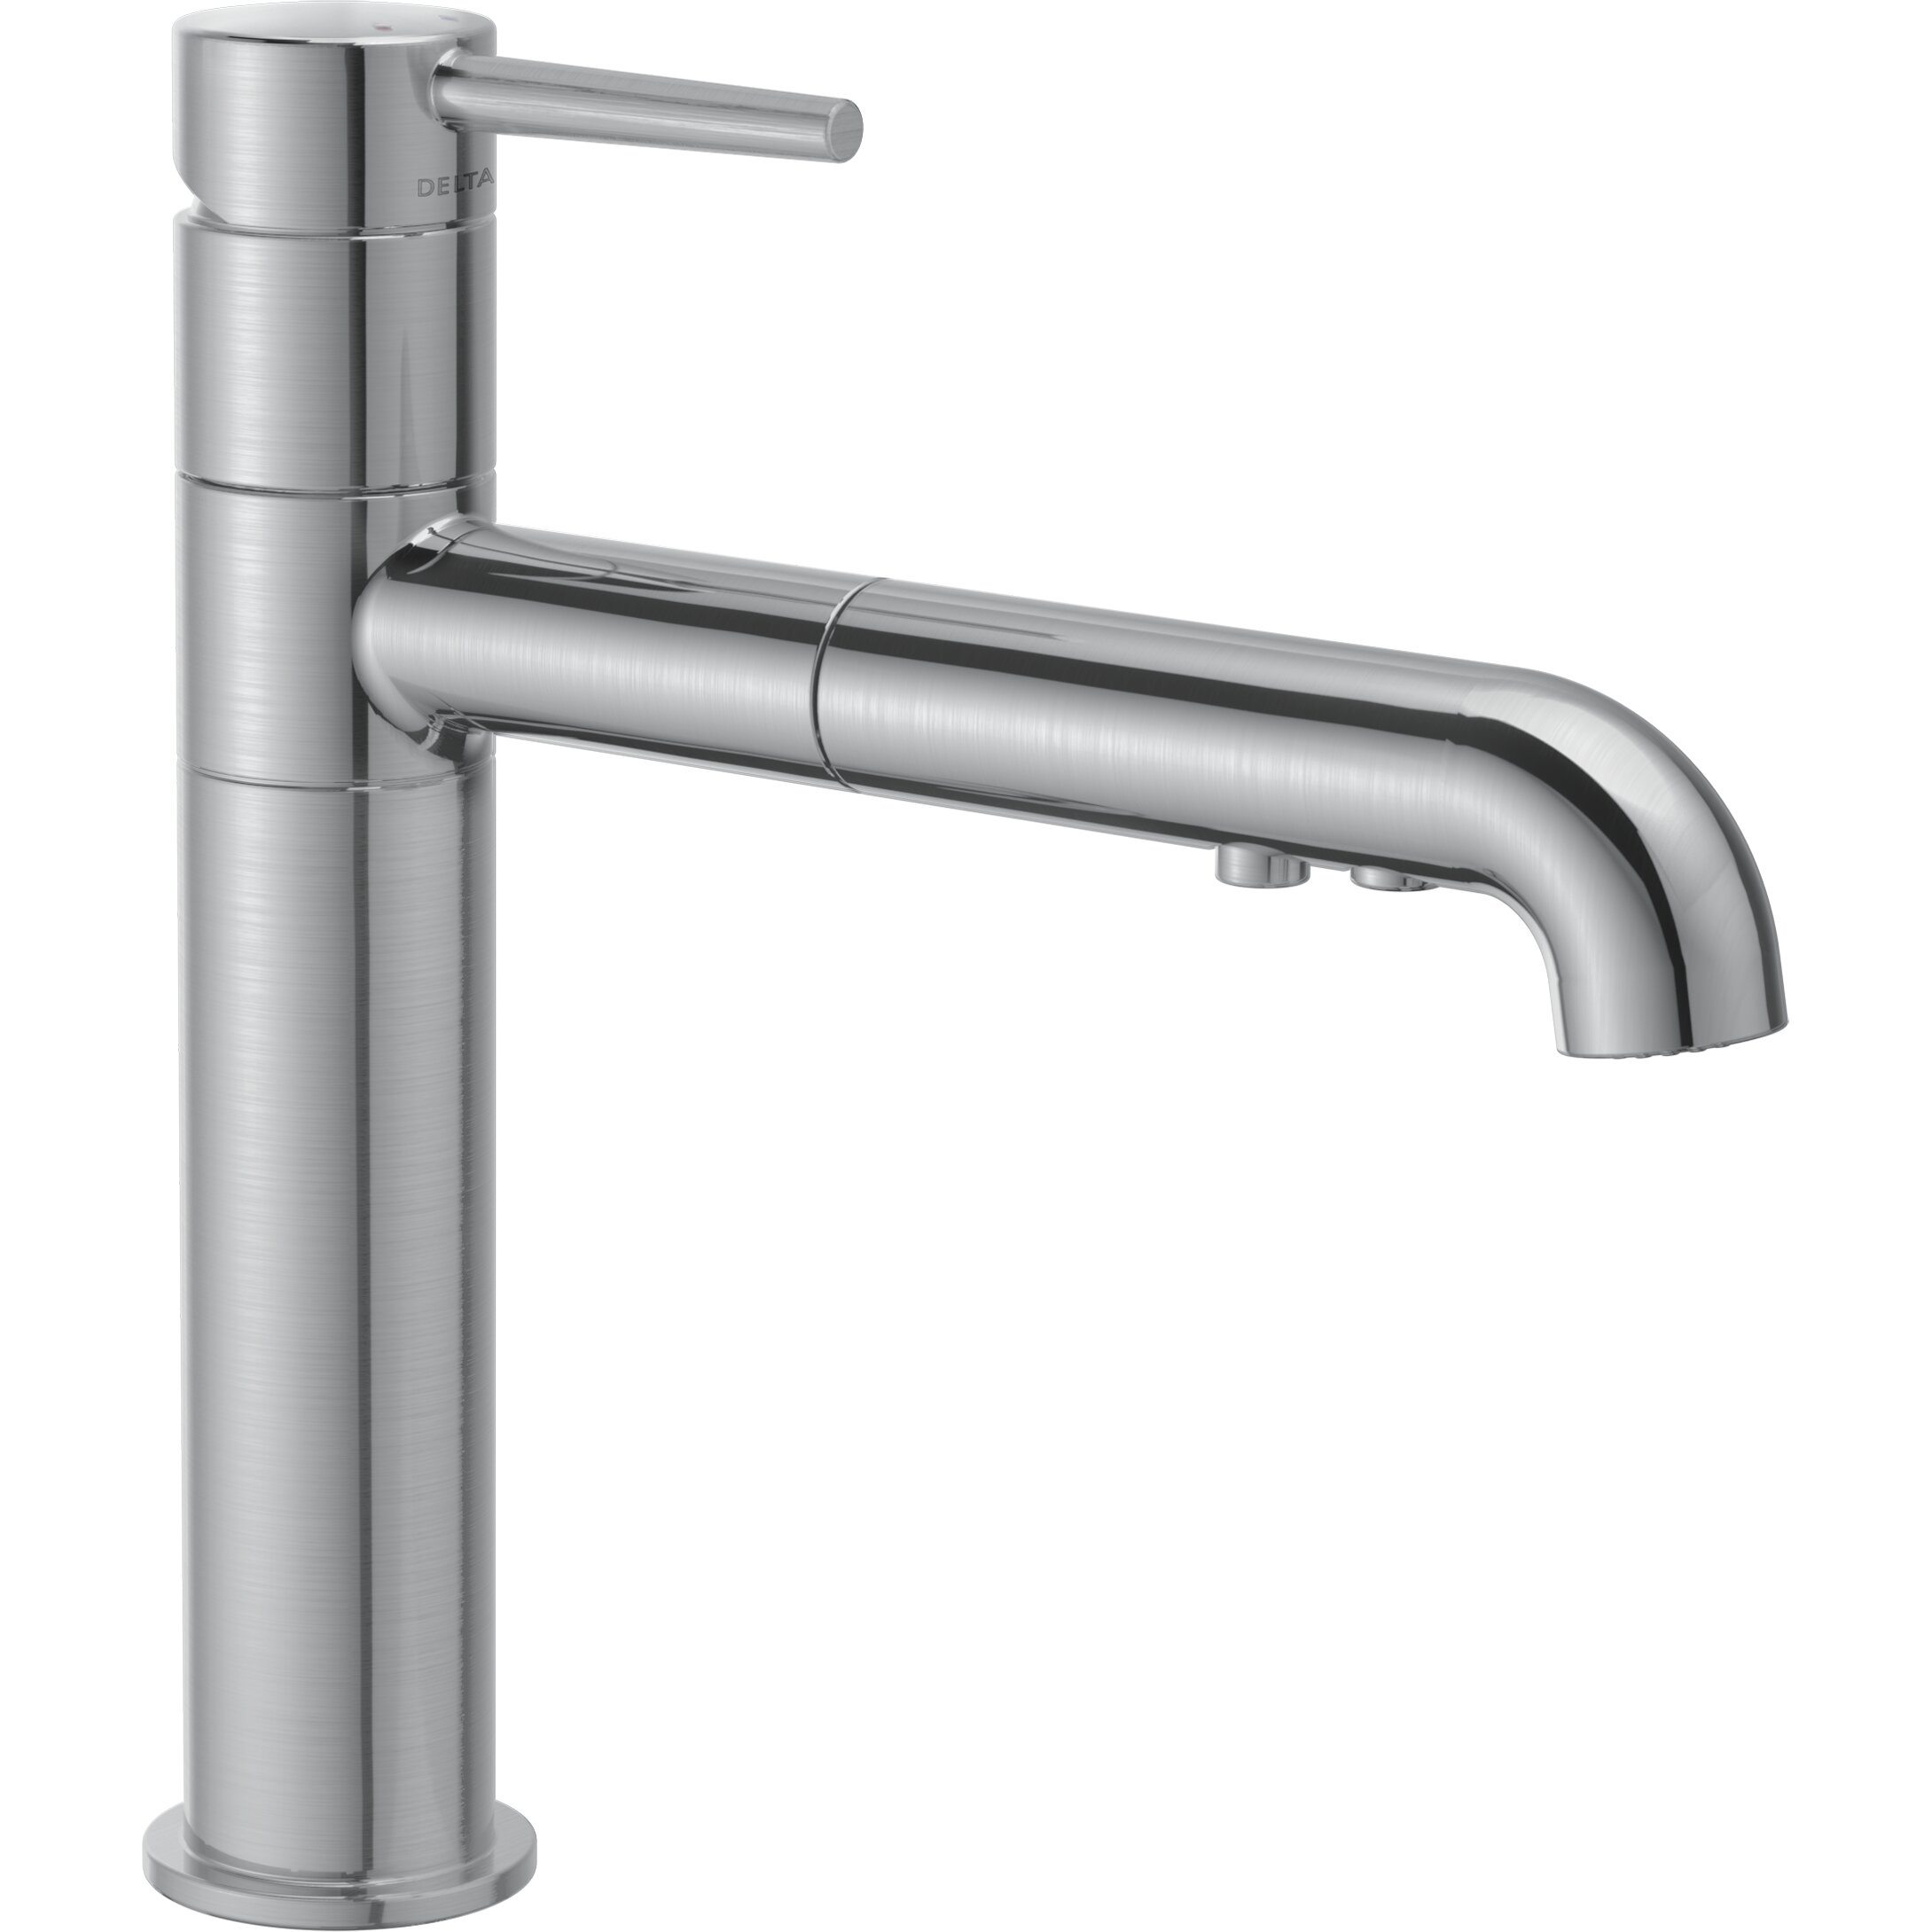 Saxony single handle pullout kitchen faucet